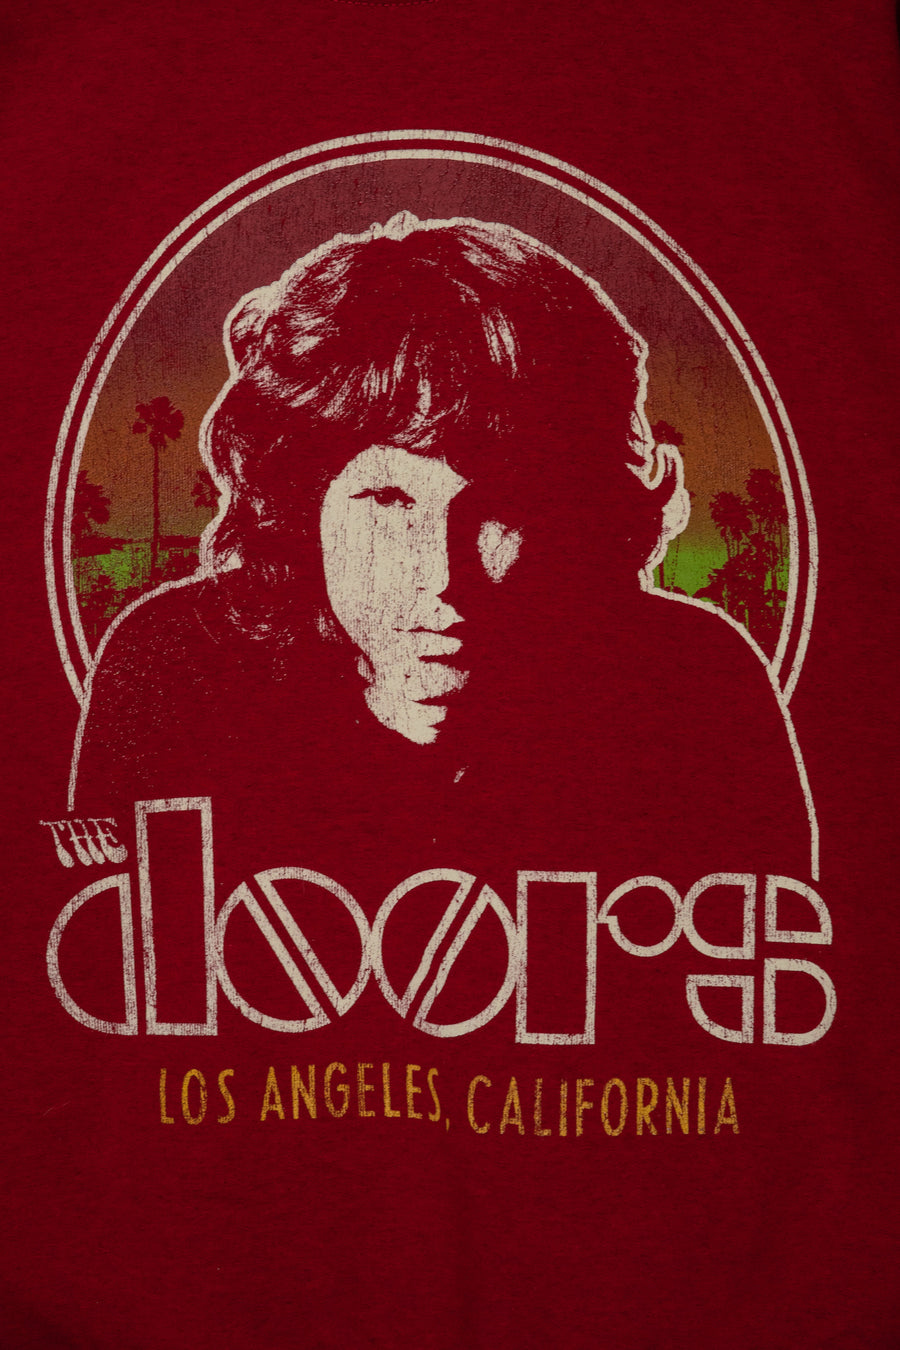 The Doors band sweatshirt - size M